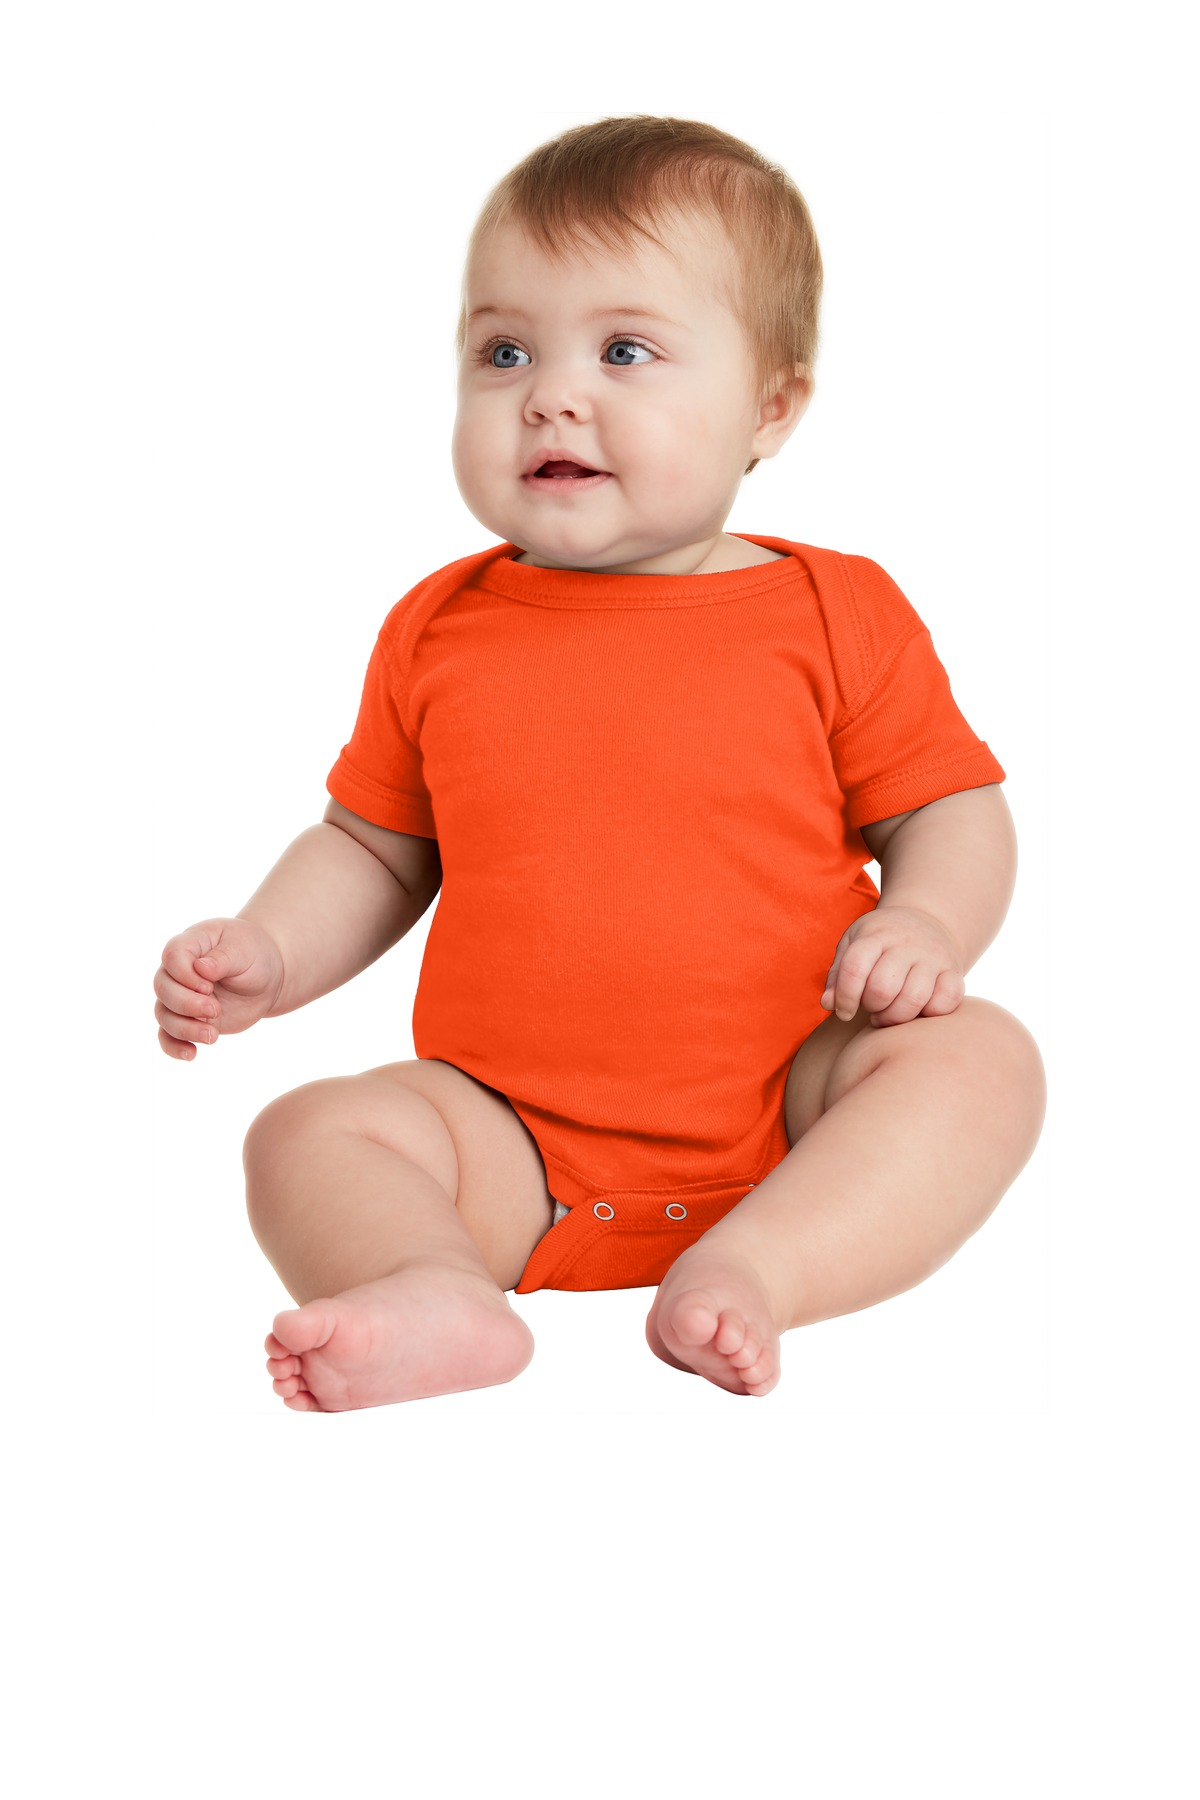 Rabbit Skins Infant Short Sleeve Baby Rib Bodysuit. RS4400